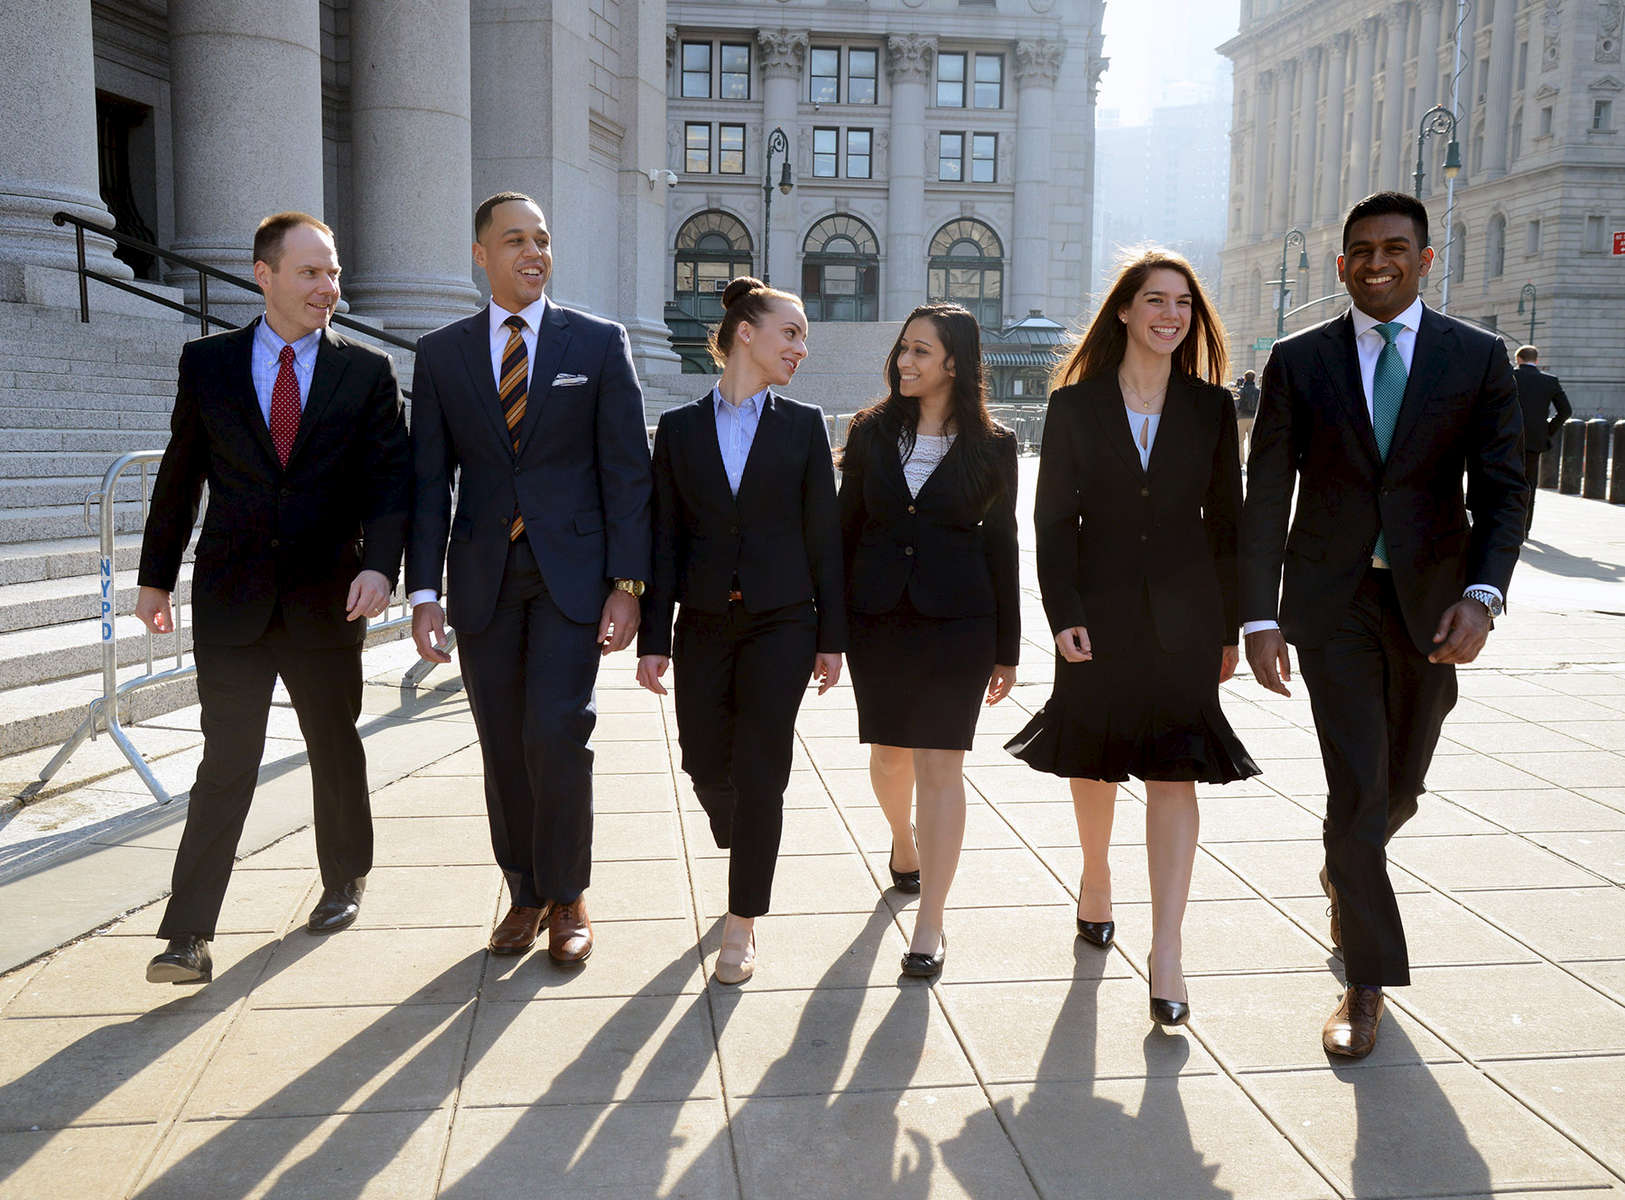 Seton Hall law students - Thurgood Marshall Courthouse, Manhattan